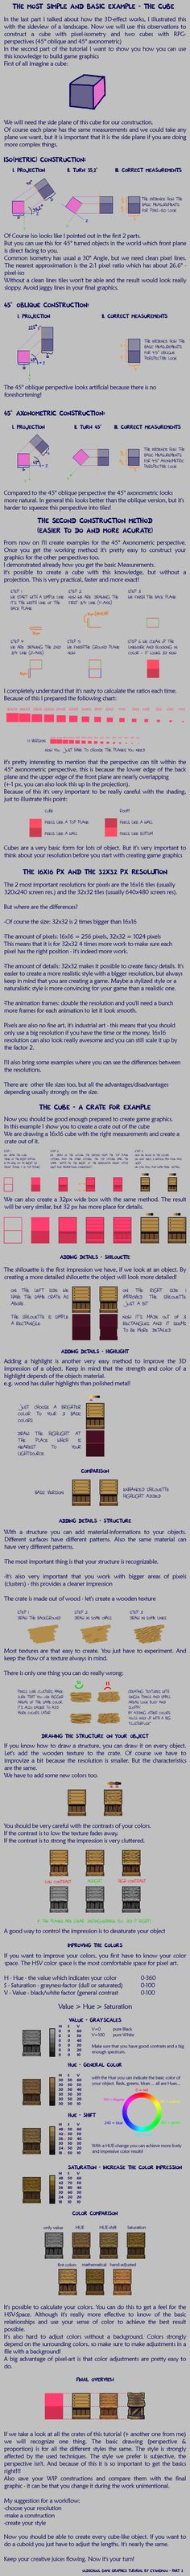 Pixel Art Tutorial 3 - The 'perfect' crate by Cyangmou.deviantart.com on @DeviantArt